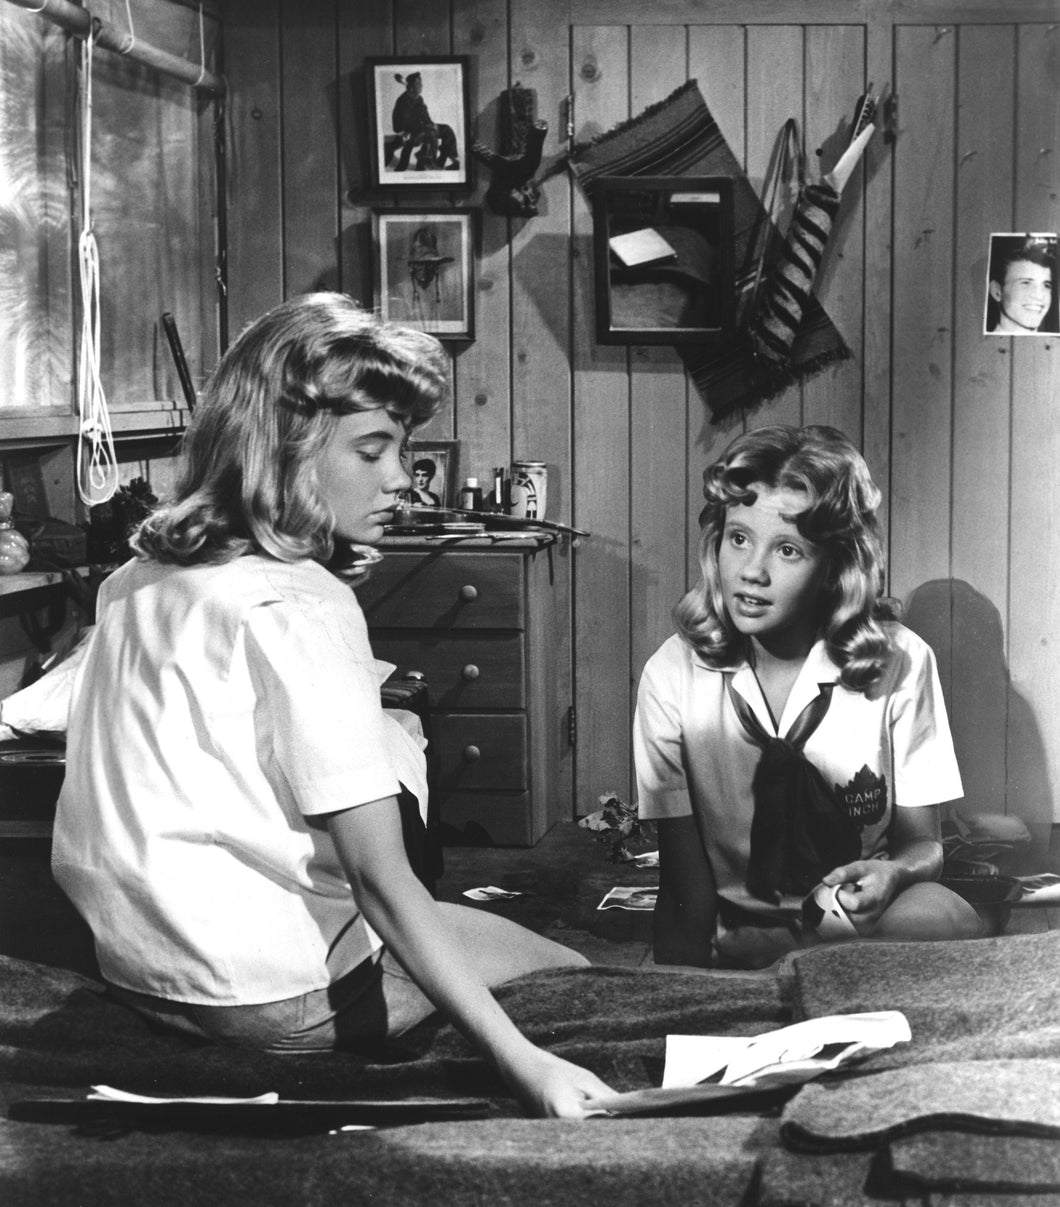 Hayley Mills - Signed The Parent Trap Image #2 (8x10, 11x14)